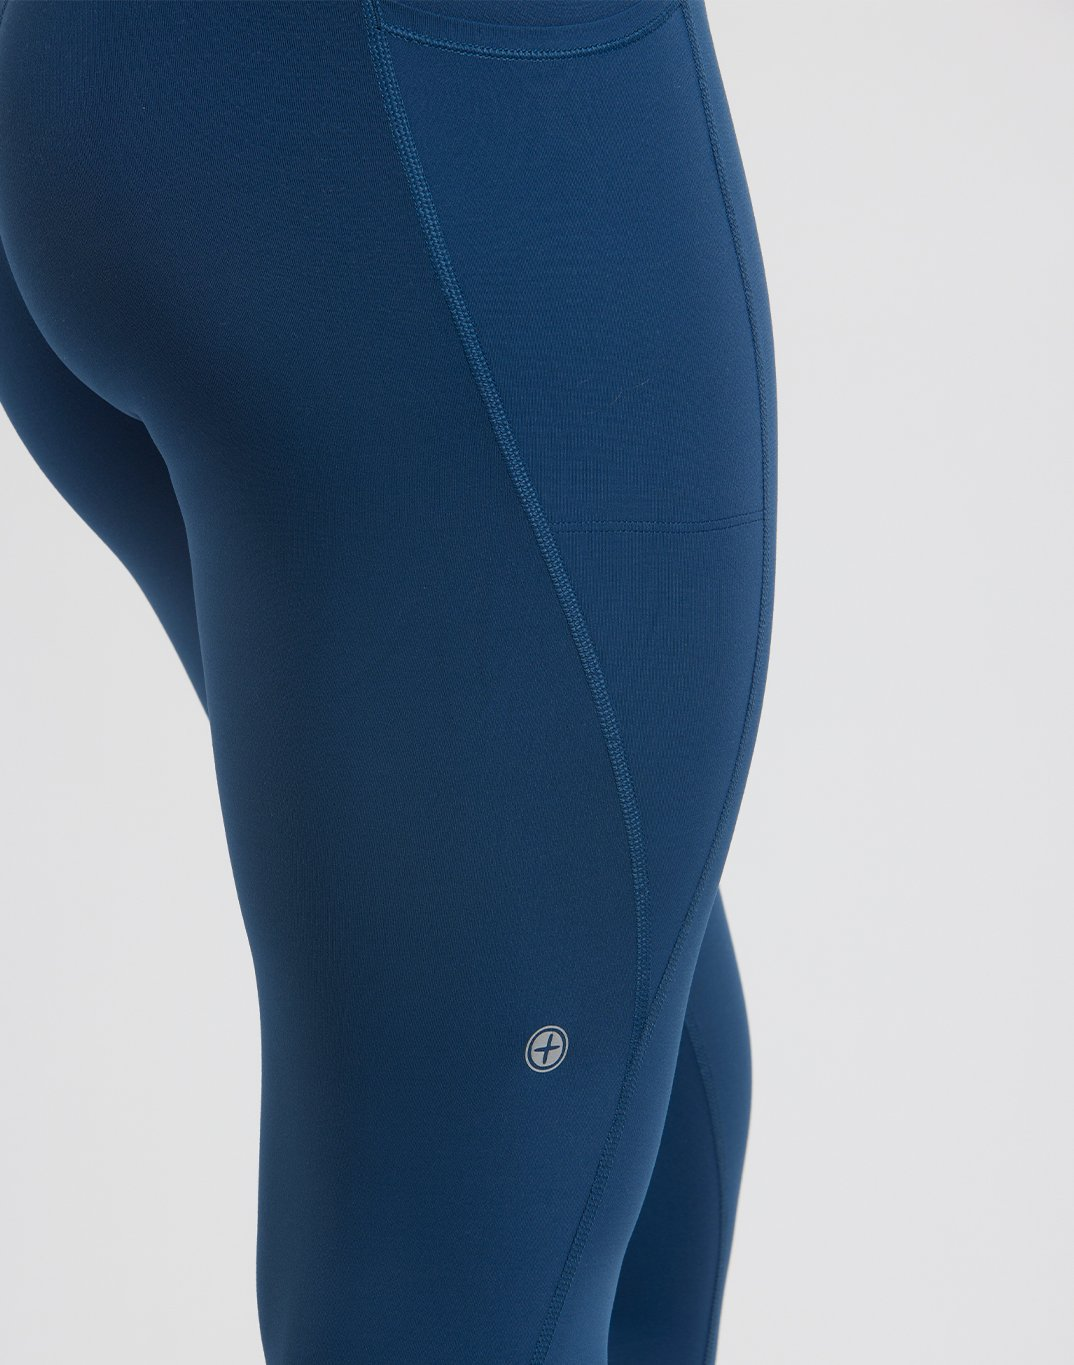 Gym Plus Coffee Leggings Womens All-In Leggings in Petrol Blue Designed in Ireland